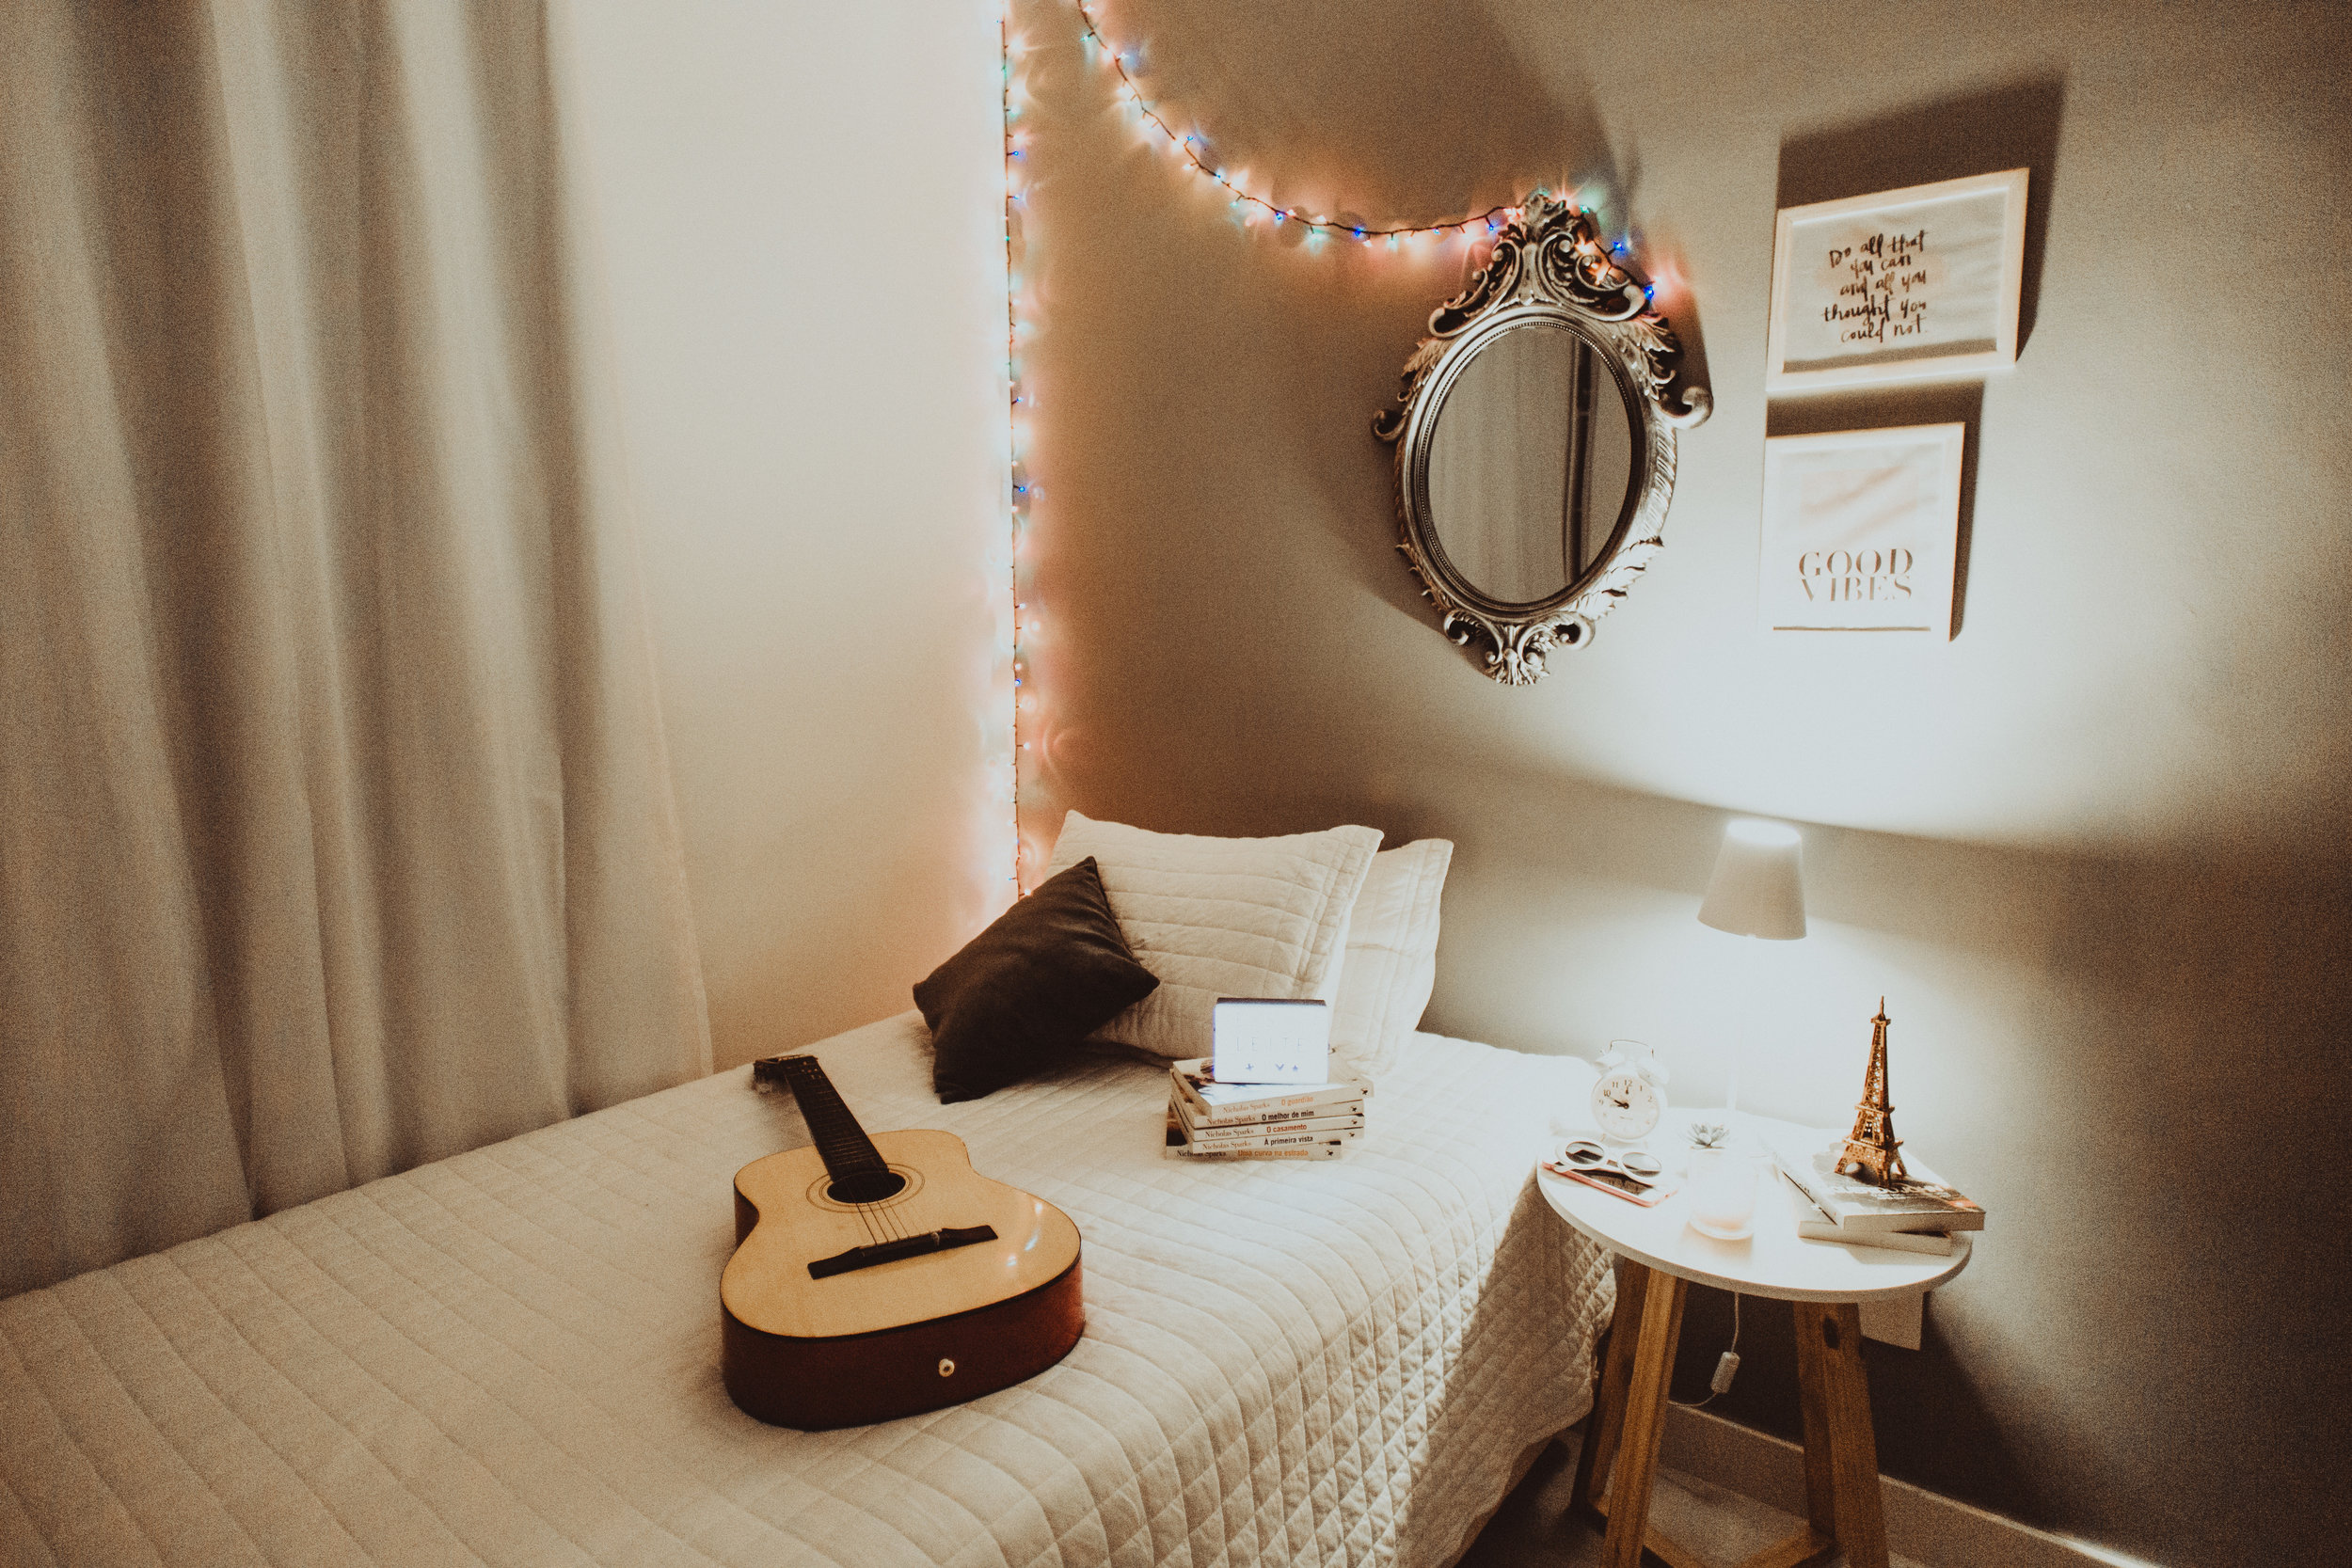 Electronics in the bedroom, sacred bedroom space